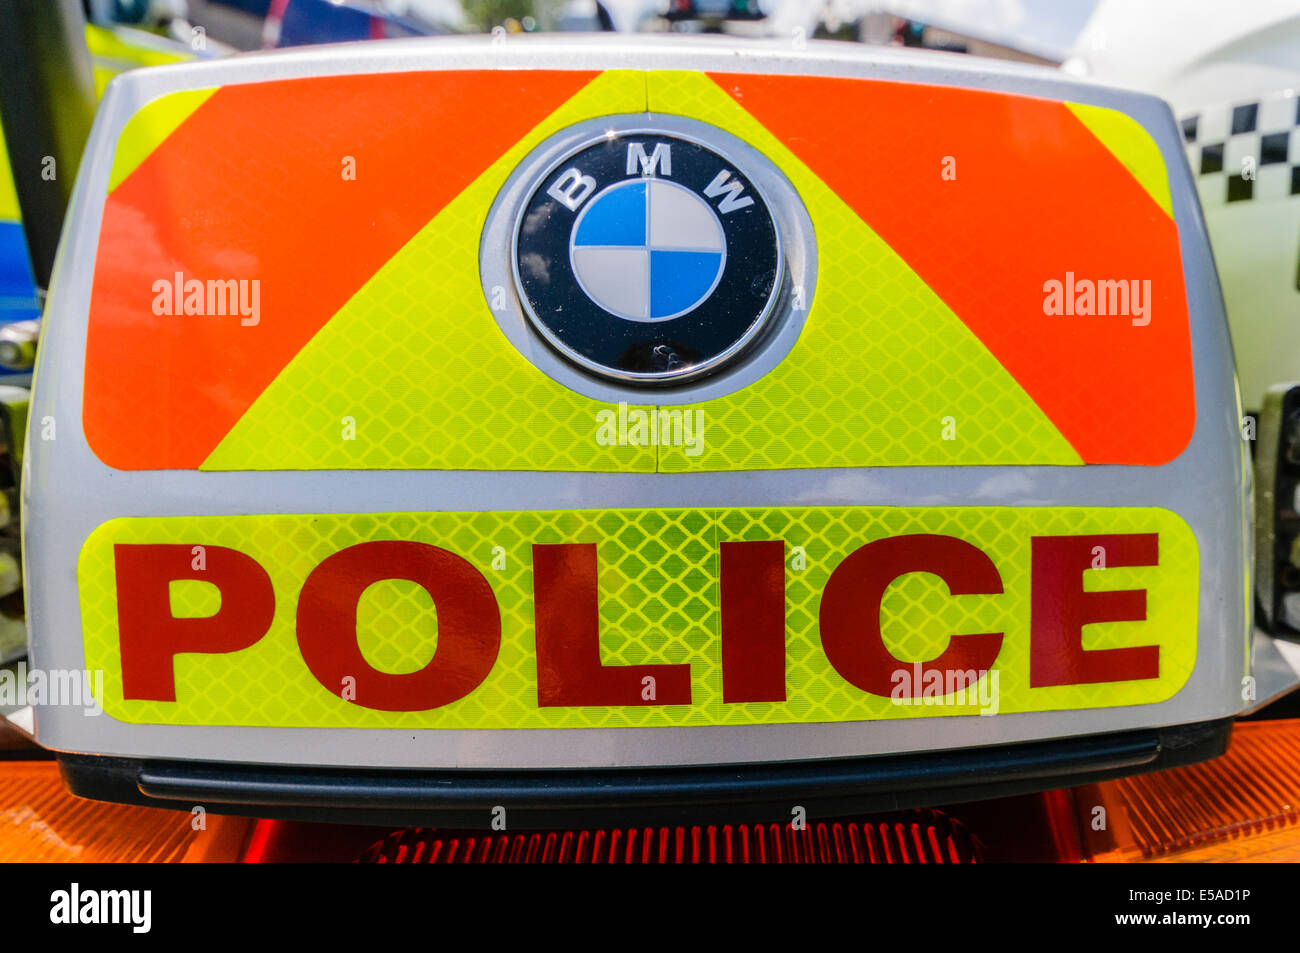 Lisburn, Northern Ireland. 25th July, 2014. - 'Police' on the rear of a motorcycle Credit:  Stephen Barnes/Alamy - Stock Image